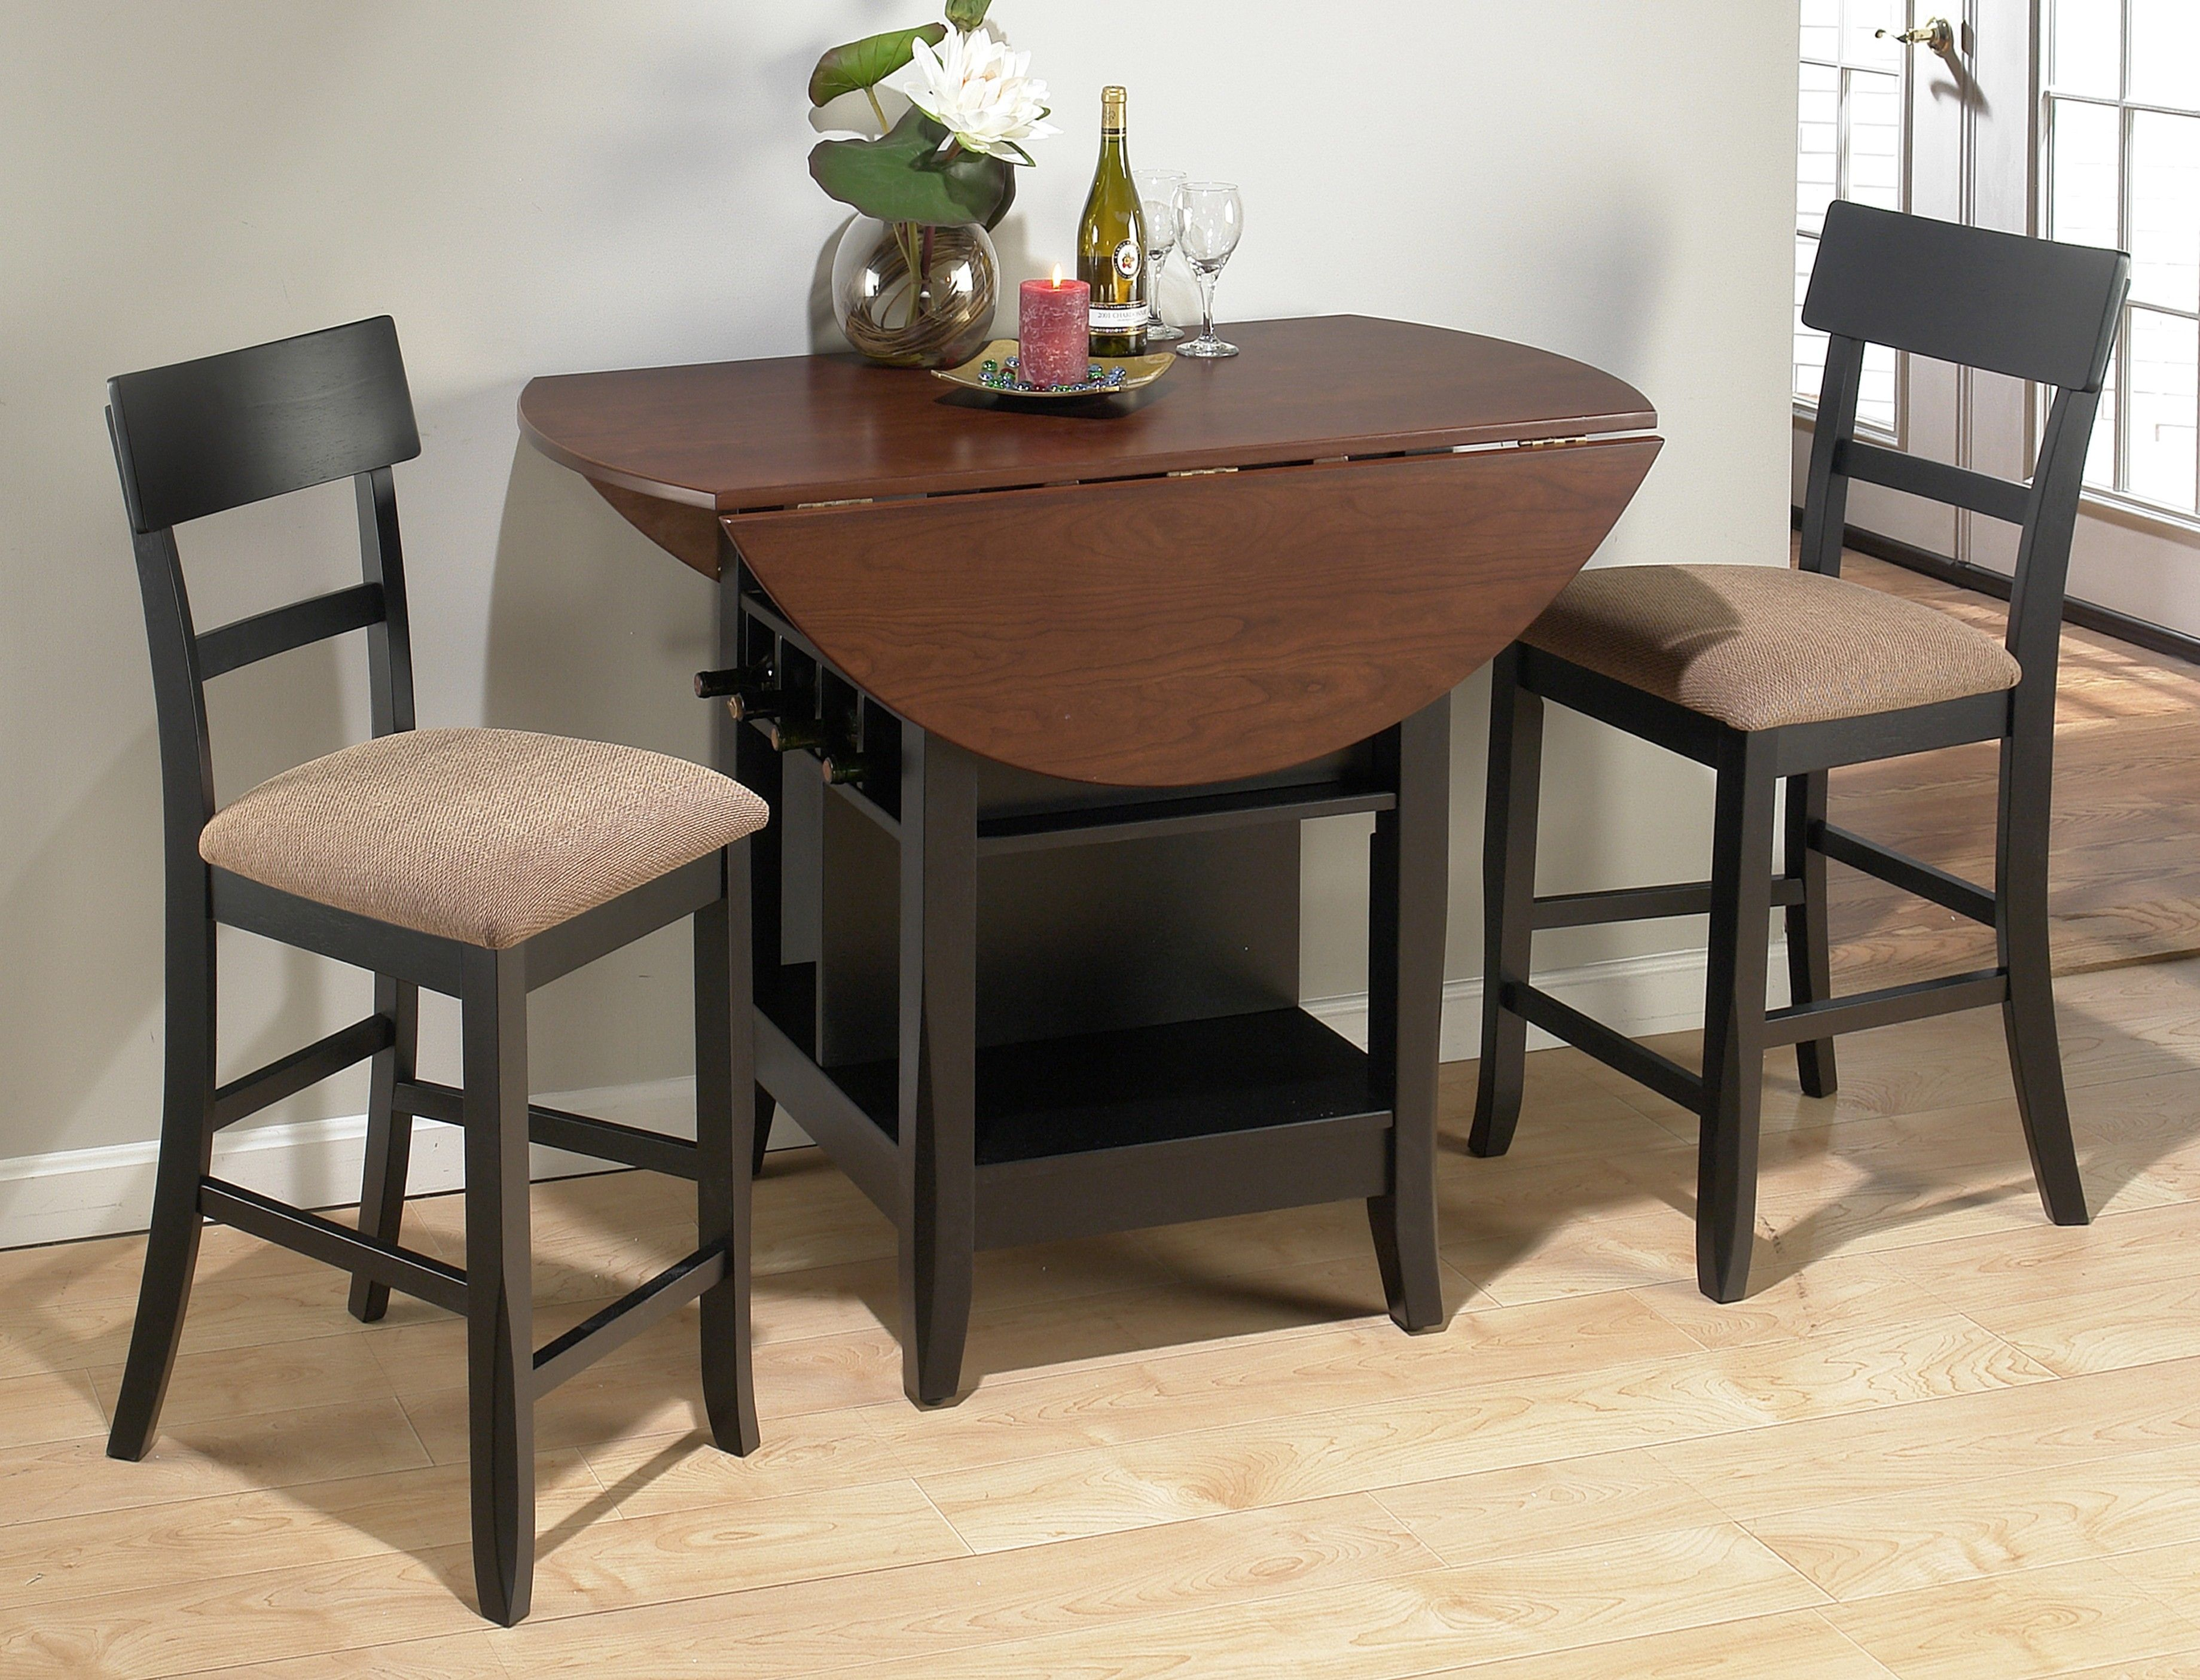 Attirant Compact Dining Table Sets